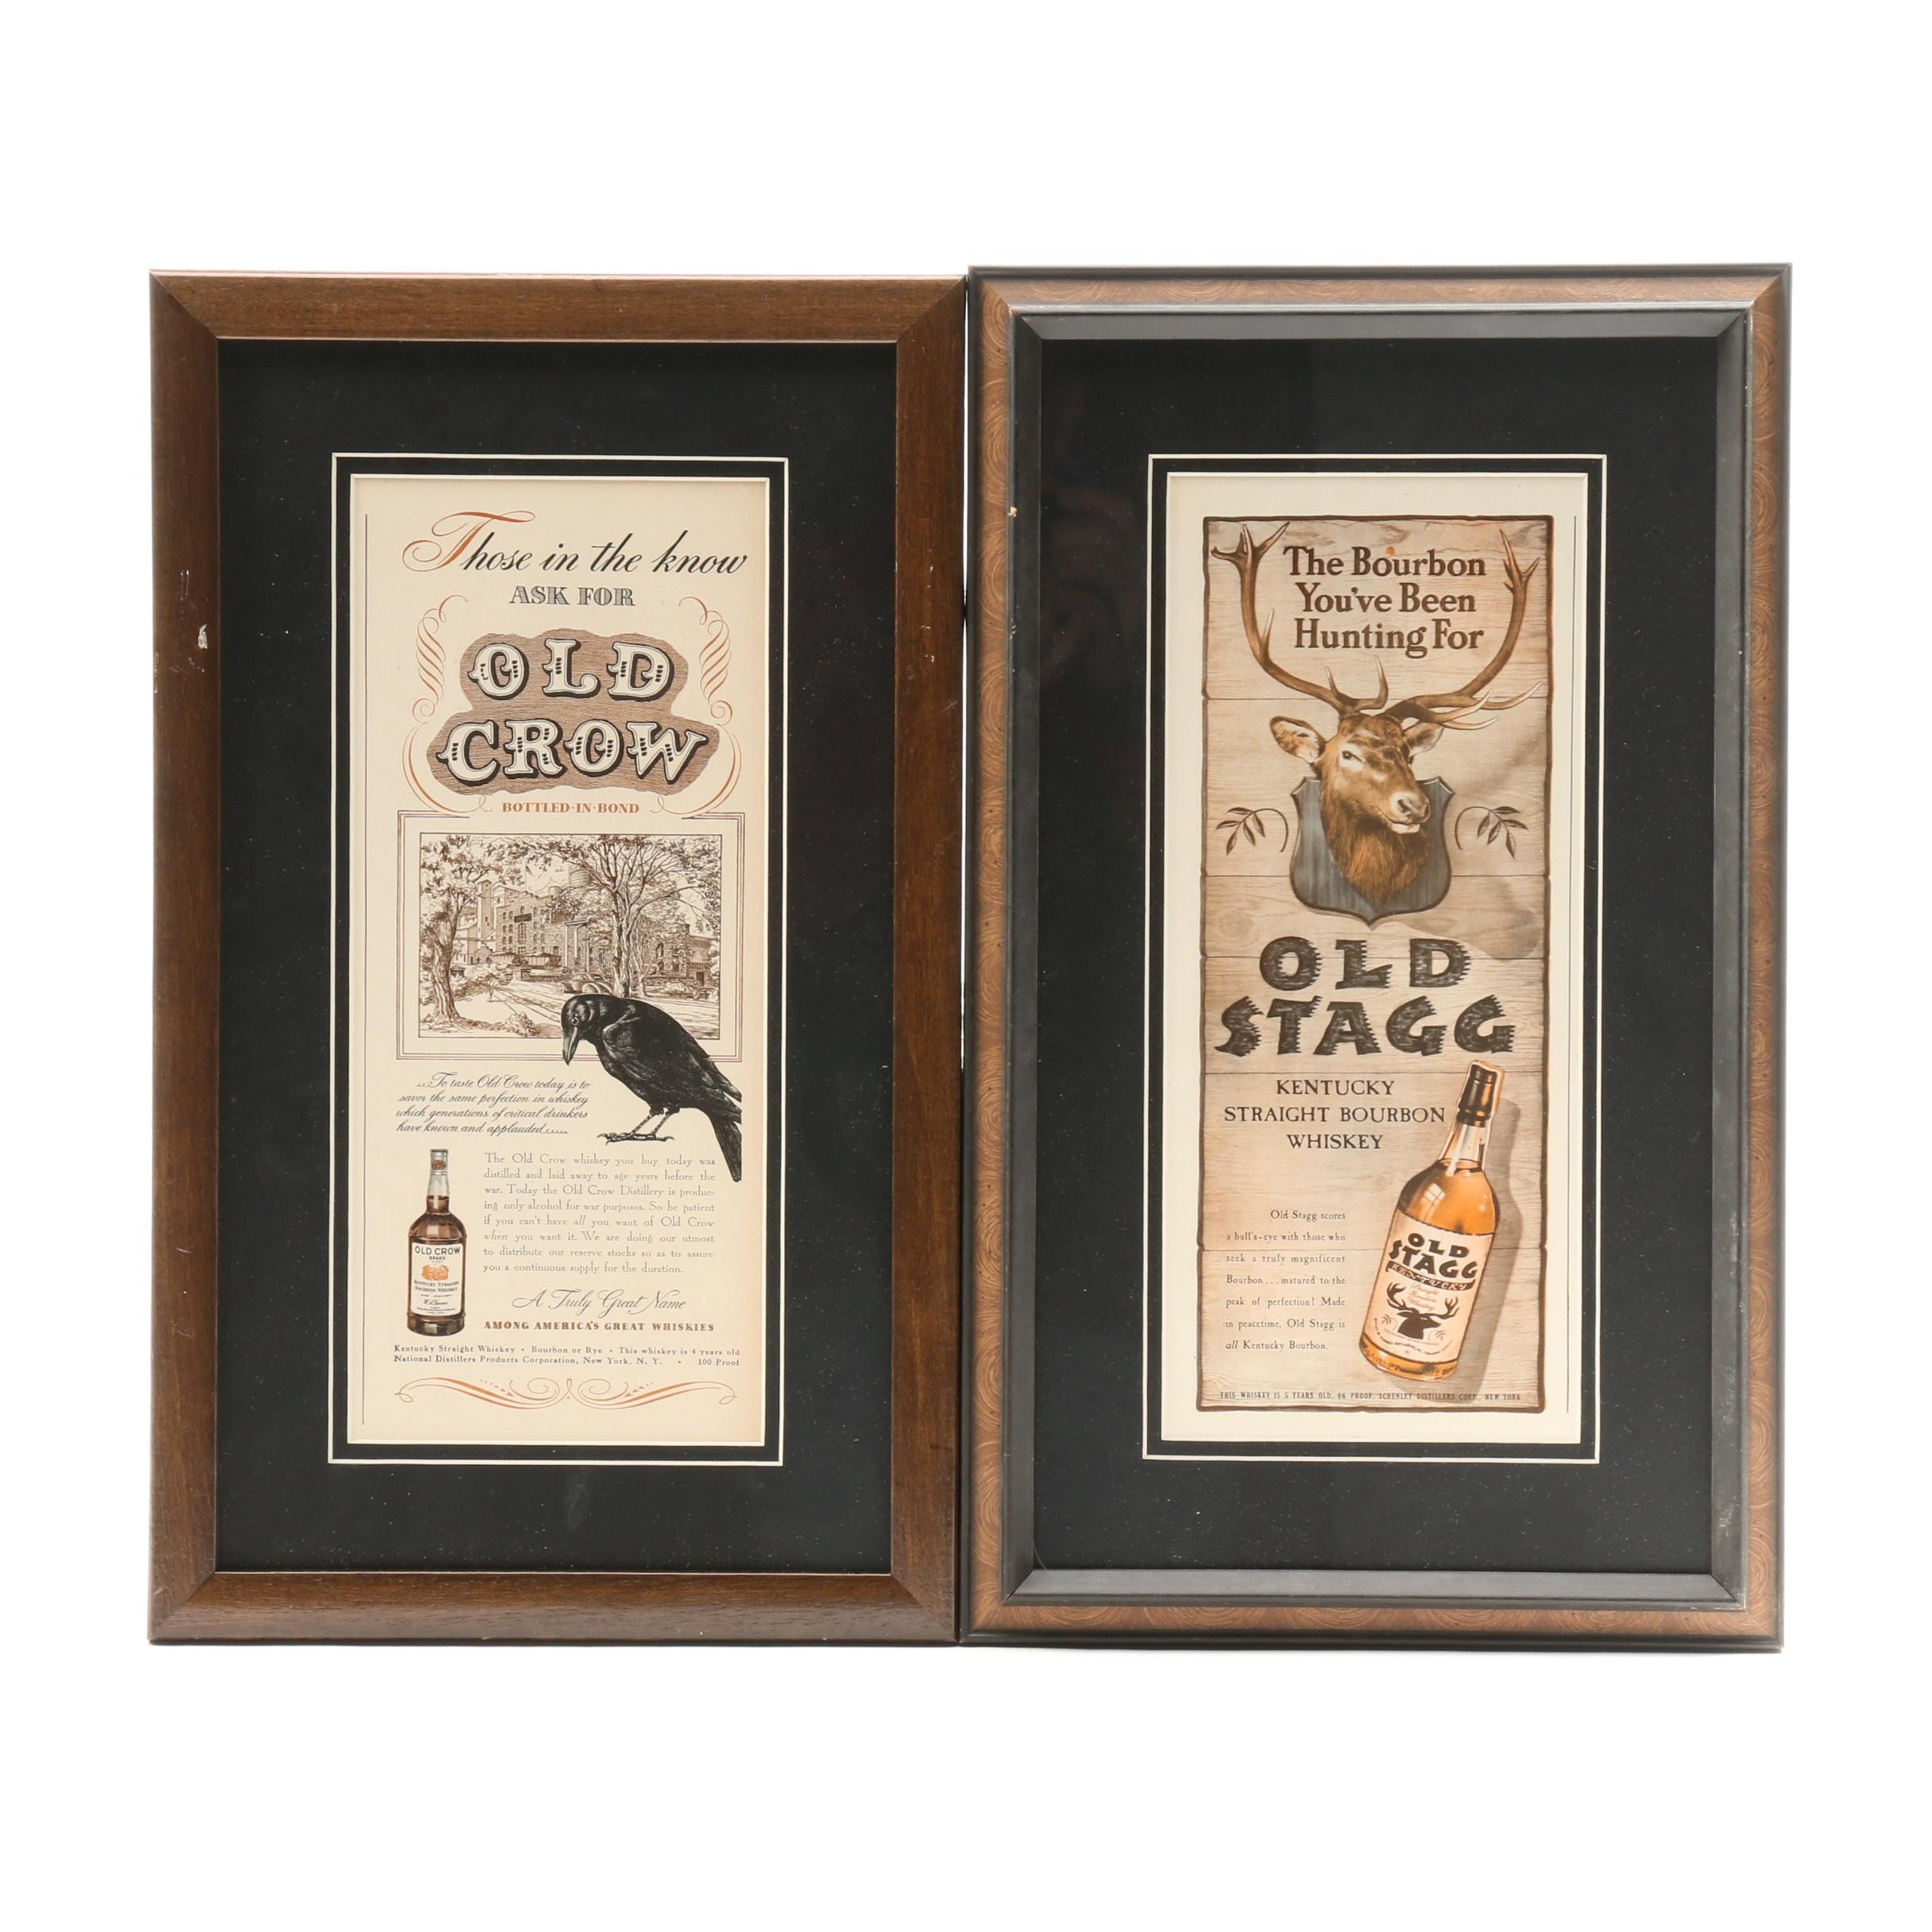 Vintage Advertisements for Old Stagg and Old Crow Bourbon